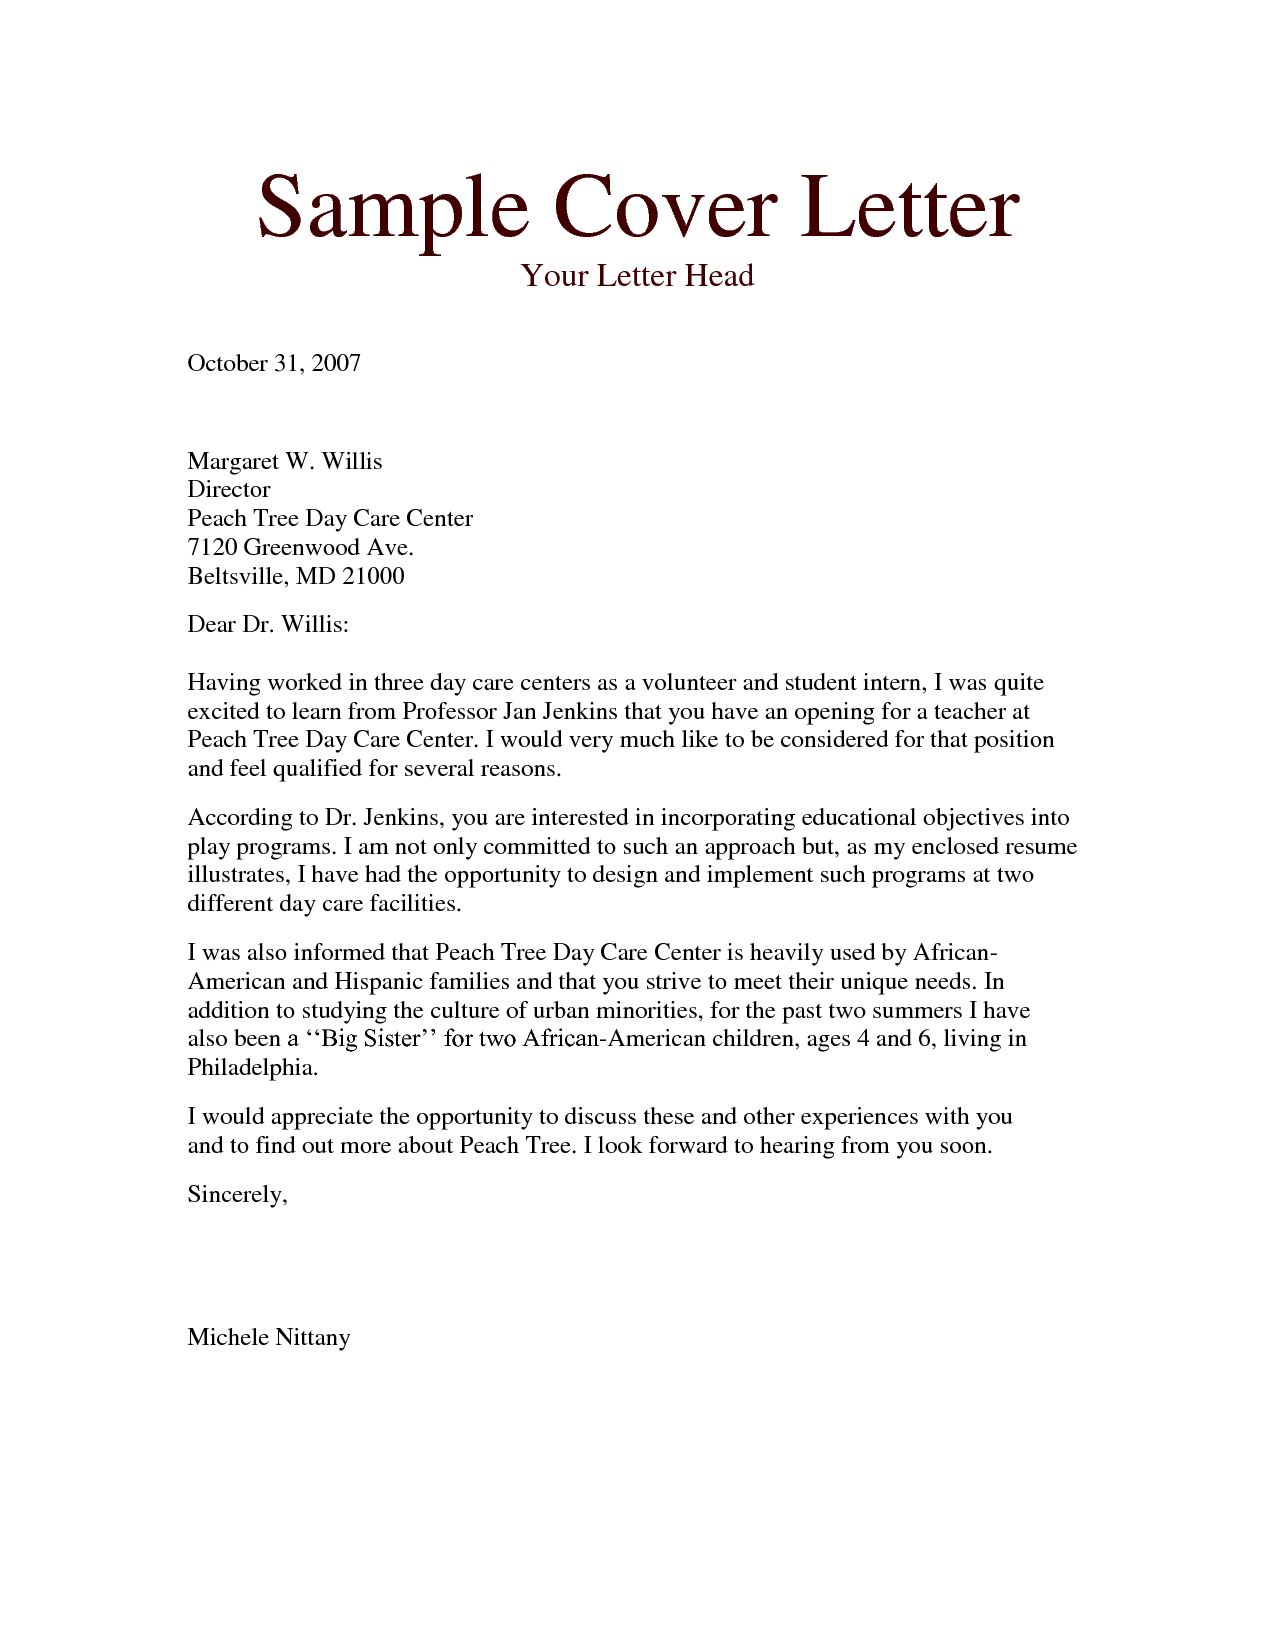 Resume Cover Letter Template Writing A Cover Letter For Executive Assistanthow To Write A